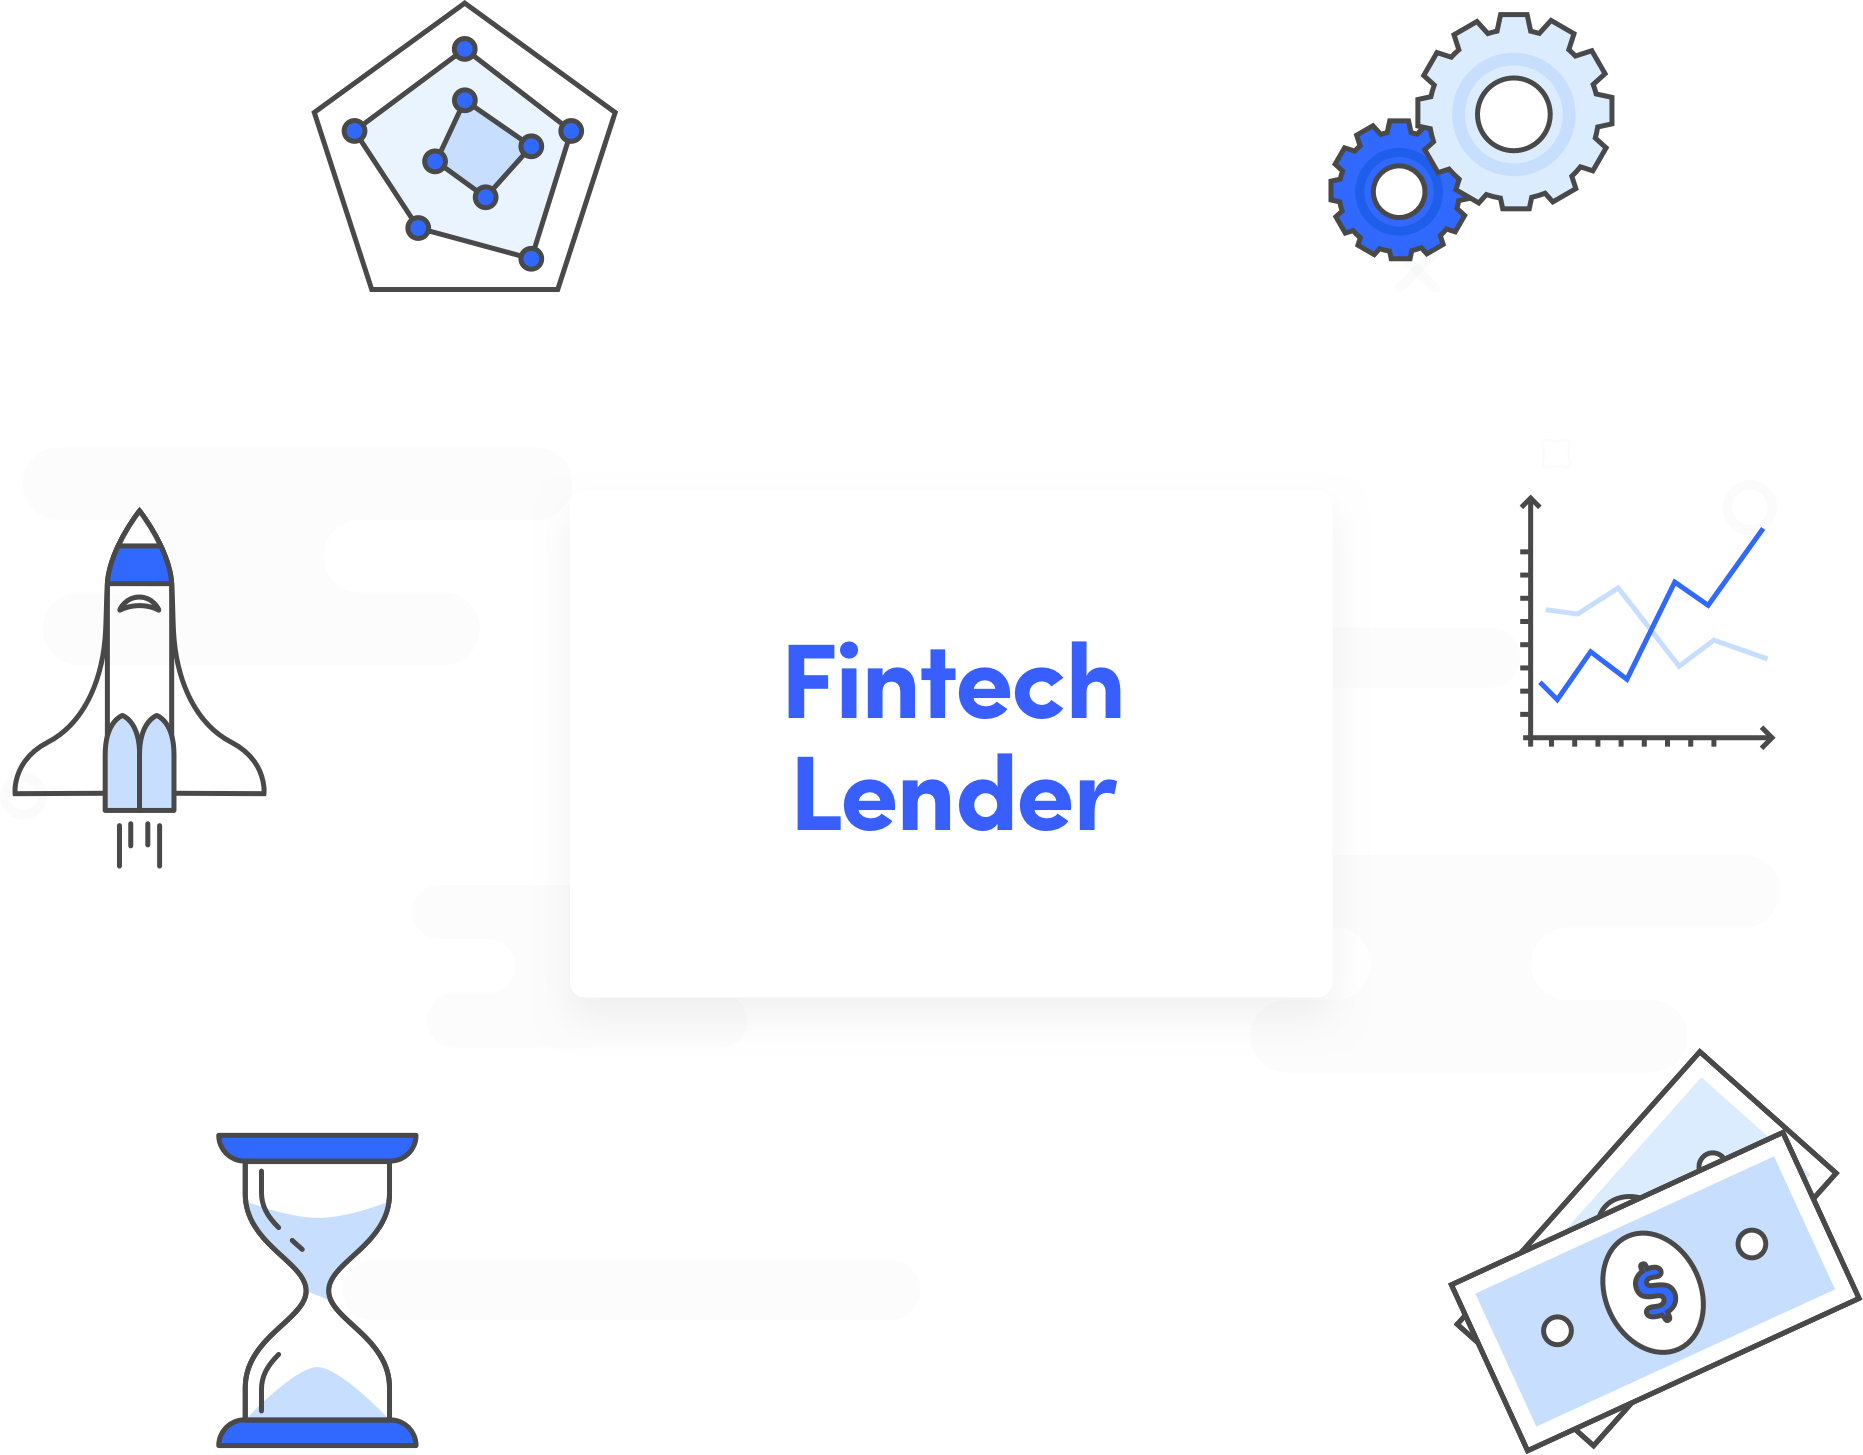 Fintech Small Business Lender